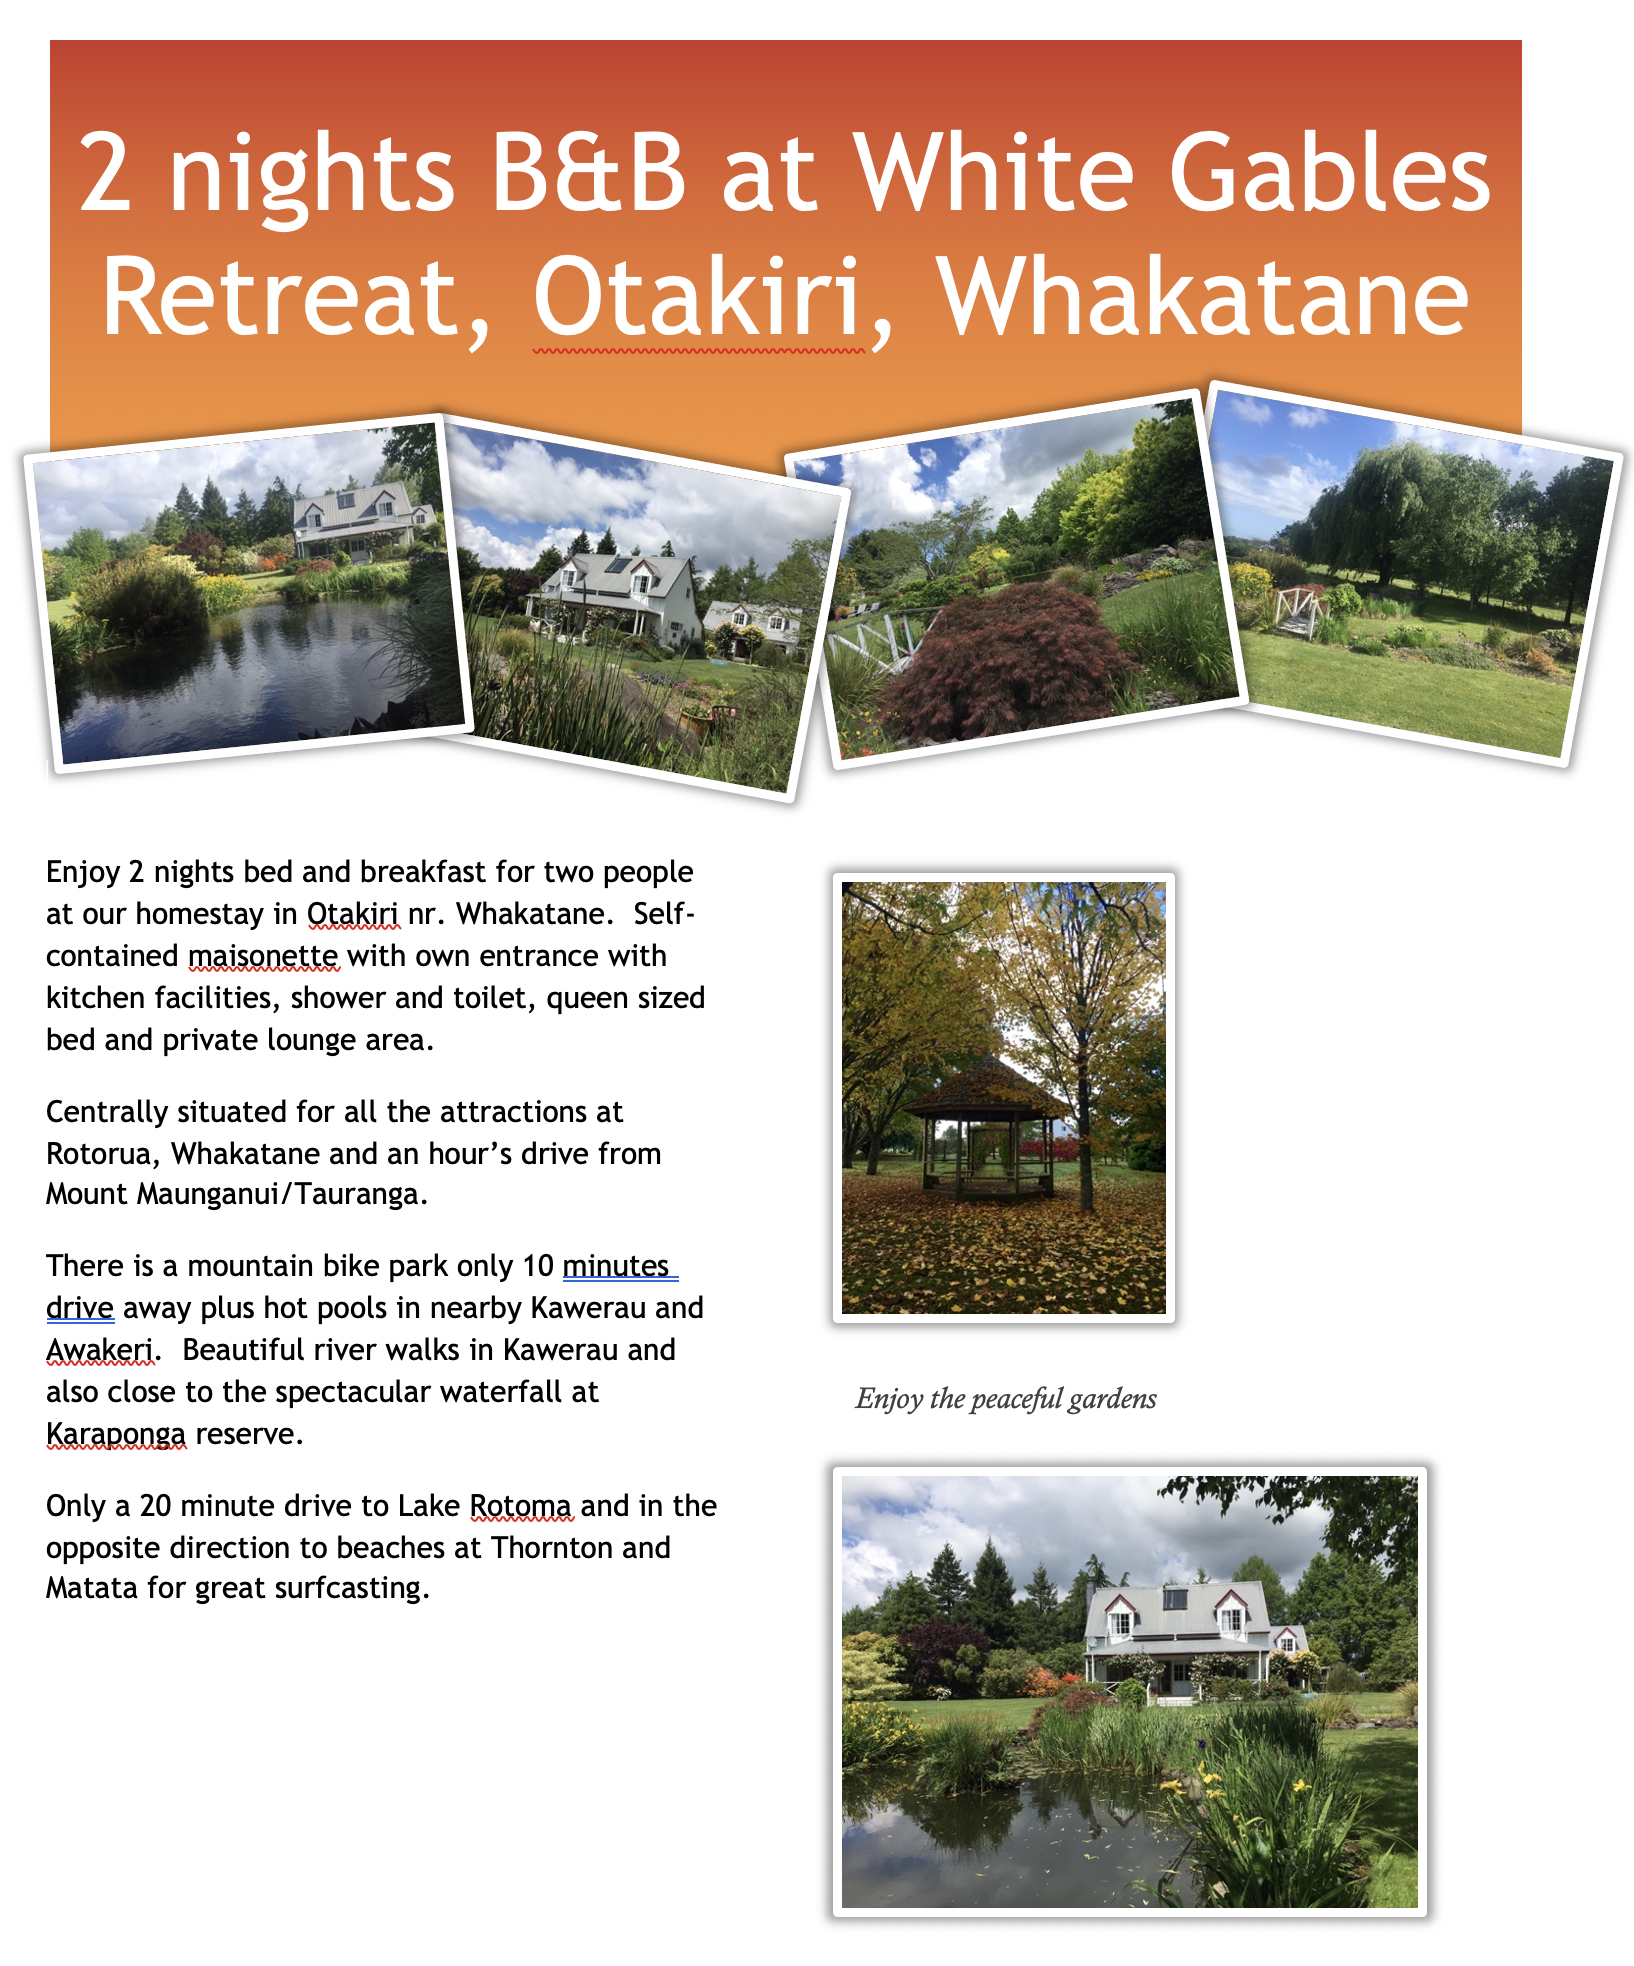 2 Nights At White Gables BnB, Otakiri